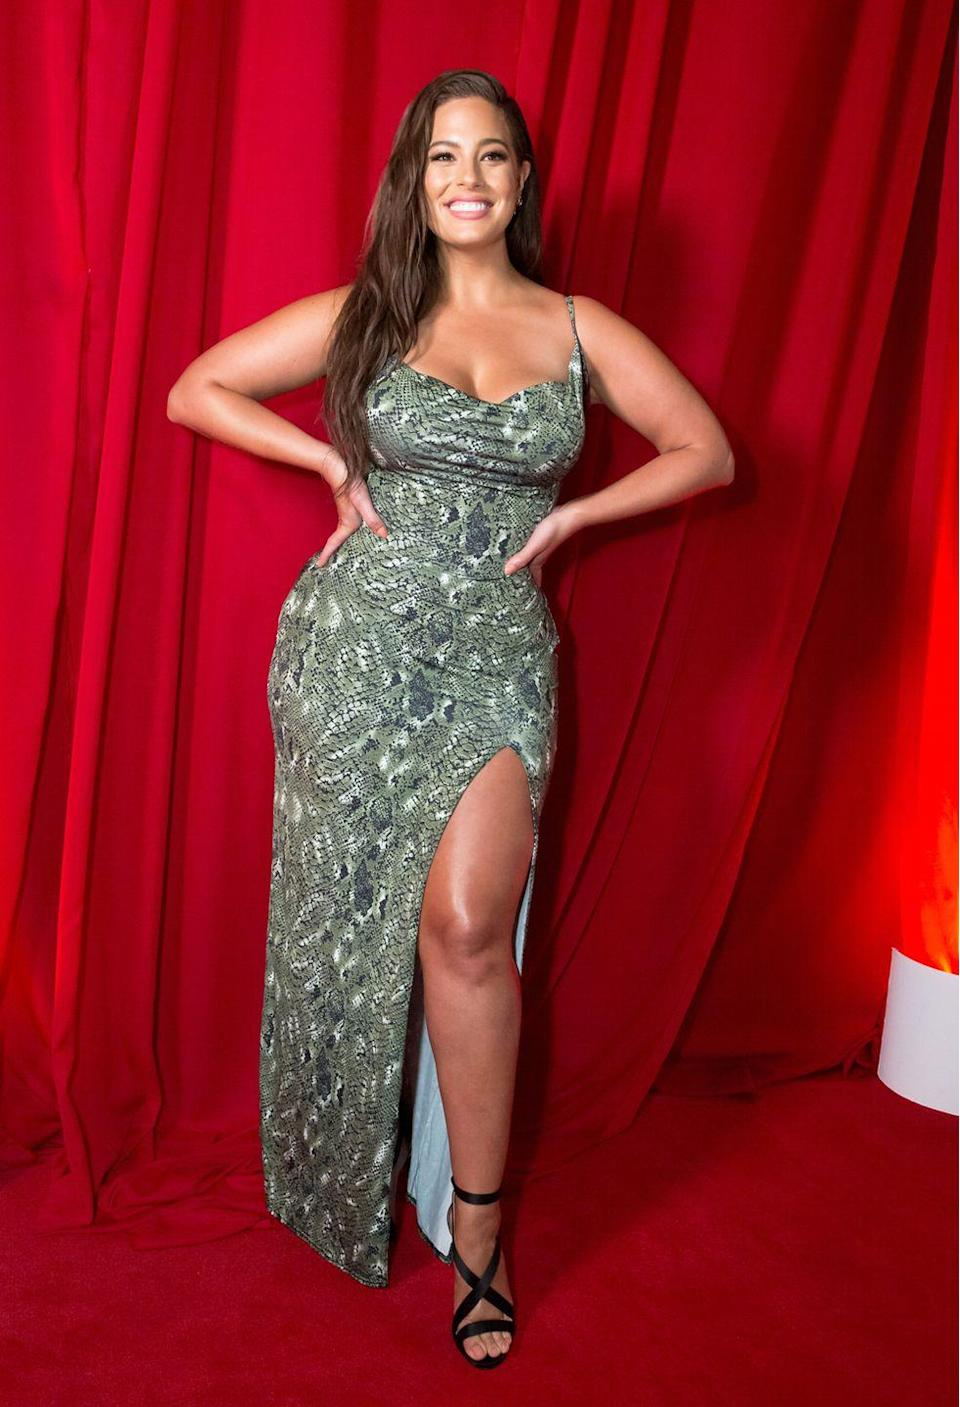 """<p>At the launch of her PrettyLittleThing collection: If you weren't excited about Ashley's fashion collection with PrettyLittleThing already (full details <a href=""""https://www.cosmopolitan.com/uk/fashion/celebrity/a23024094/ashley-graham-pretty-little-thing-collection/"""" rel=""""nofollow noopener"""" target=""""_blank"""" data-ylk=""""slk:here"""" class=""""link rapid-noclick-resp"""">here</a>), you will be after this. The supermodel arrived at her launch party, in a slinky, snakeskin dress, straight out of her range and now we can't wait to see what the rest of the collection looks like. </p>"""